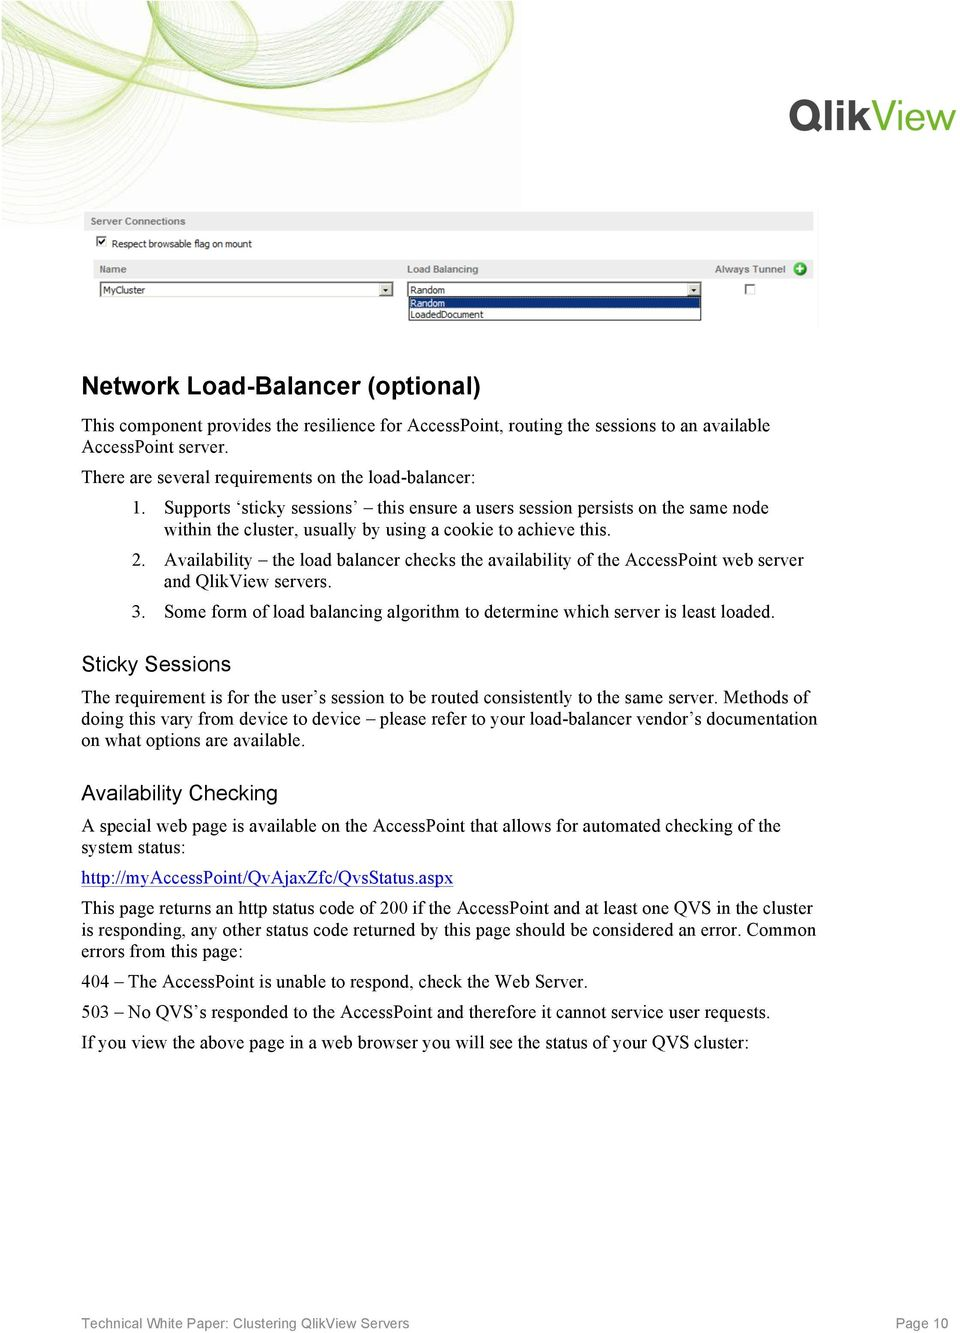 Availability the load balancer checks the availability of the AccessPoint web server and QlikView servers. 3. Some form of load balancing algorithm to determine which server is least loaded.